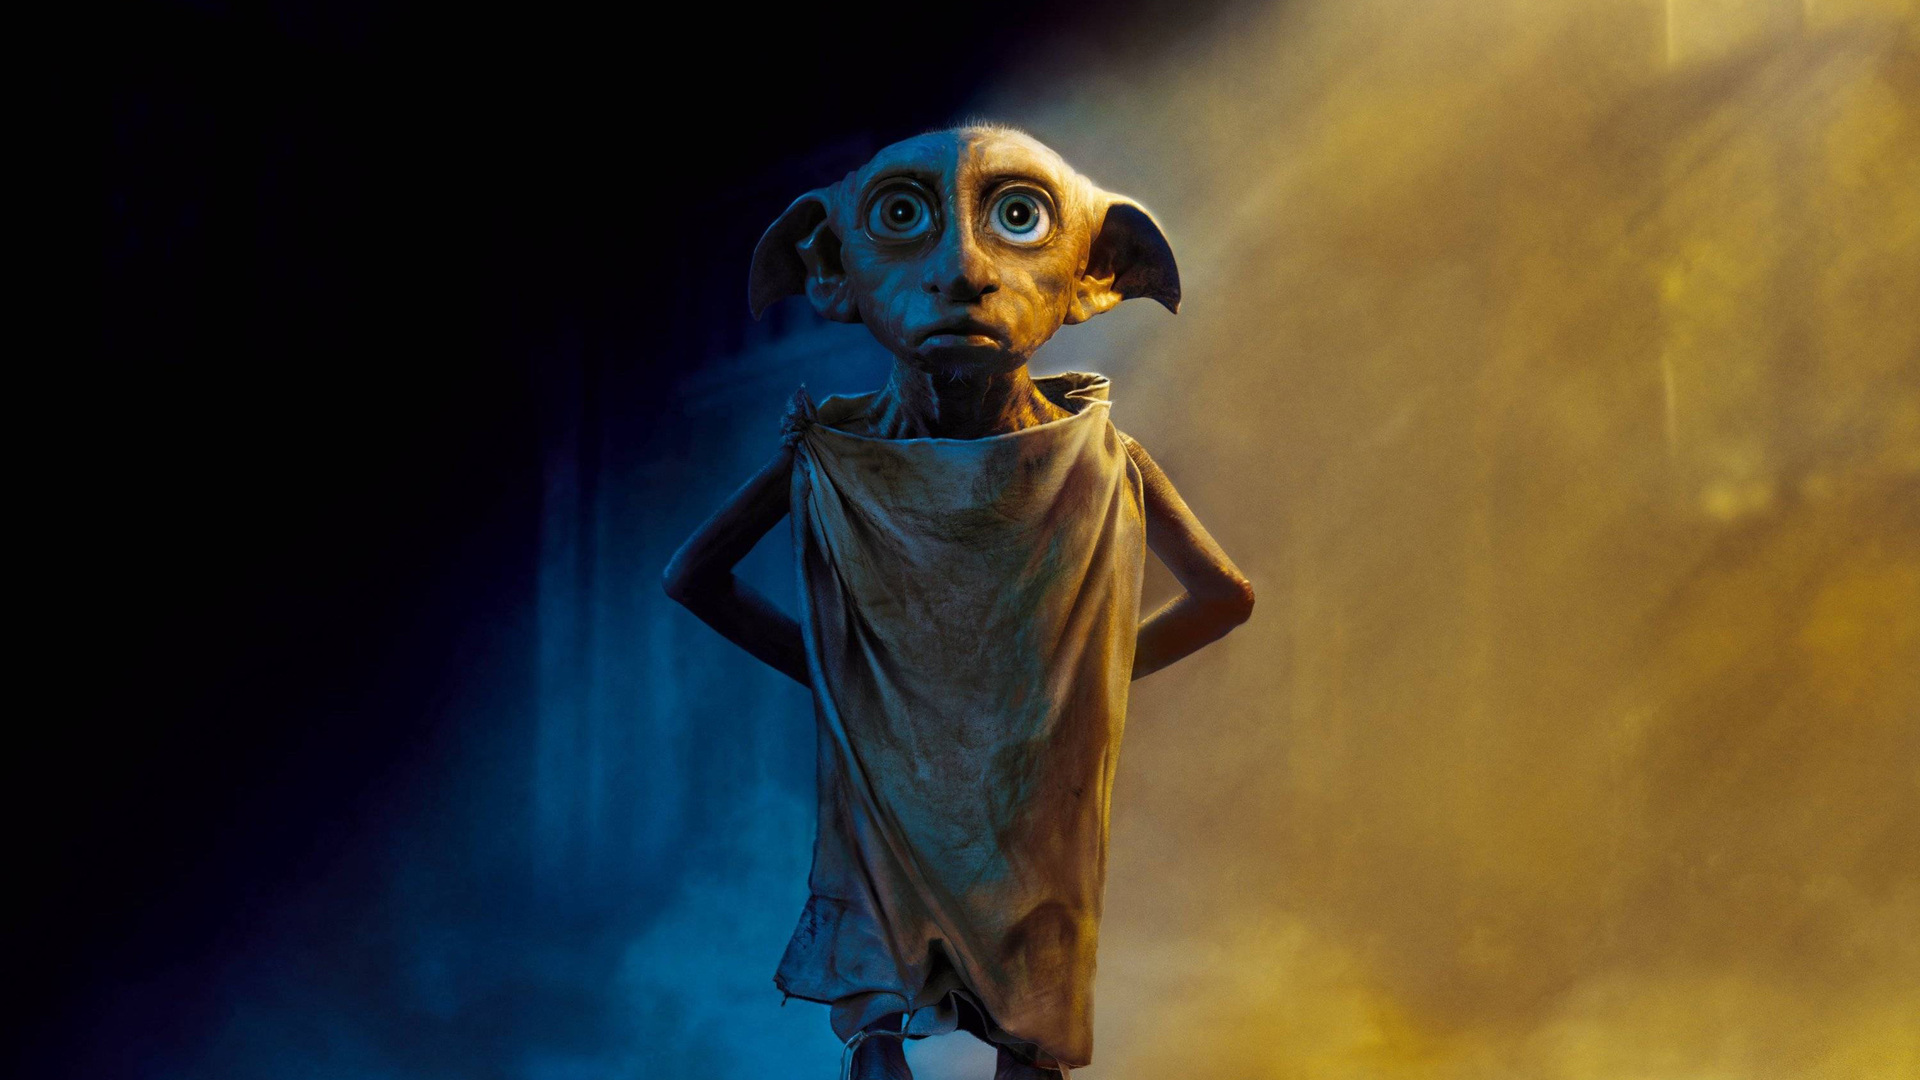 Download Wallpaper Harry Potter Full Hd - dobby-the-house-elf-harry-potter-a9-1920x1080  Gallery_139358.jpg